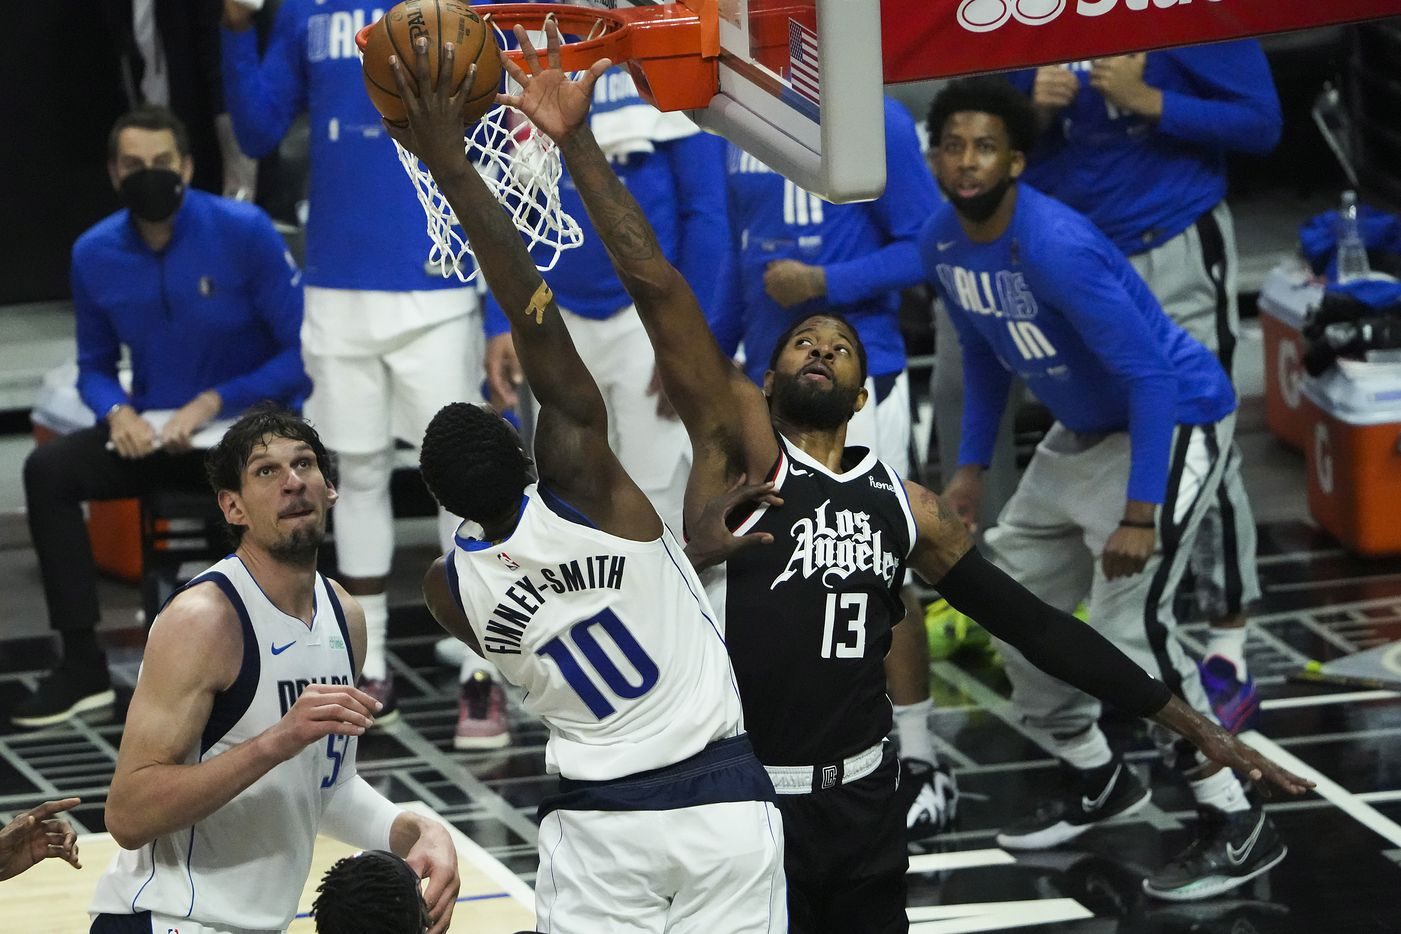 Dallas Mavericks forward Dorian Finney-Smith (10) dunks the ball past LA Clippers guard Paul George (13) during the second quarter of Game 7 of an NBA playoff series at the Staples Center on Sunday, June 6, 2021, in Los Angeles.